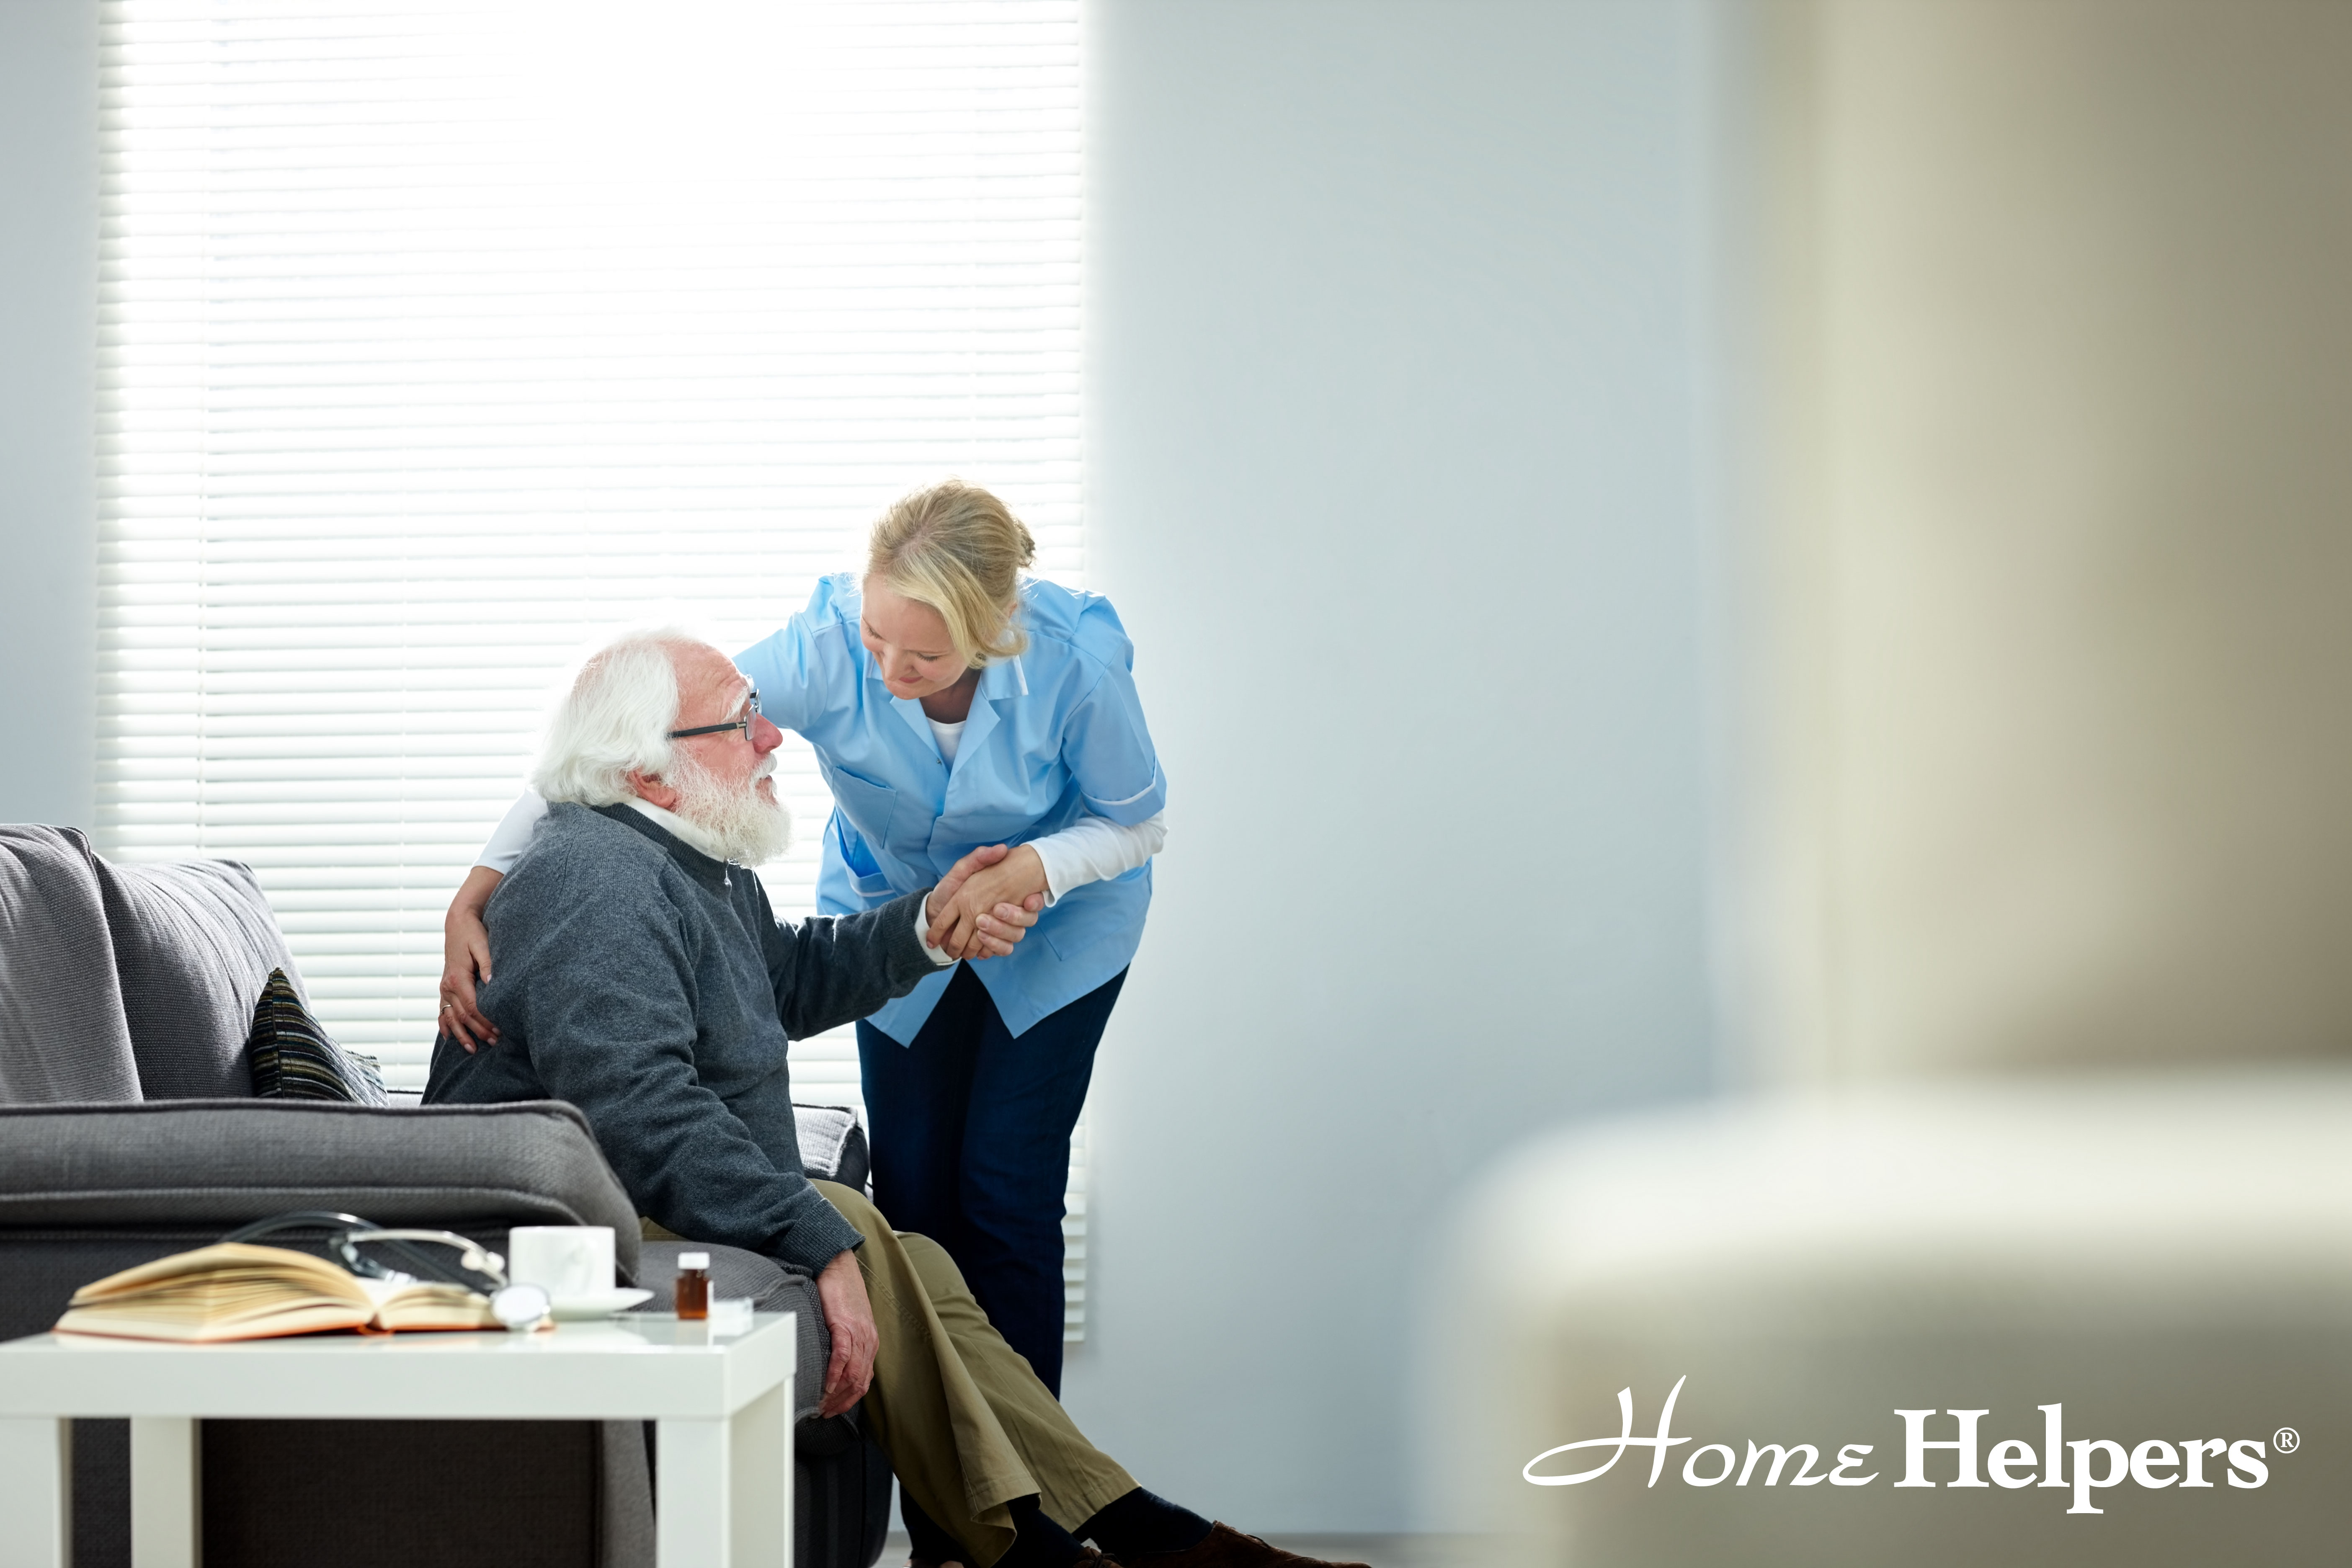 Home Helpers caregiver helping client out of a chair